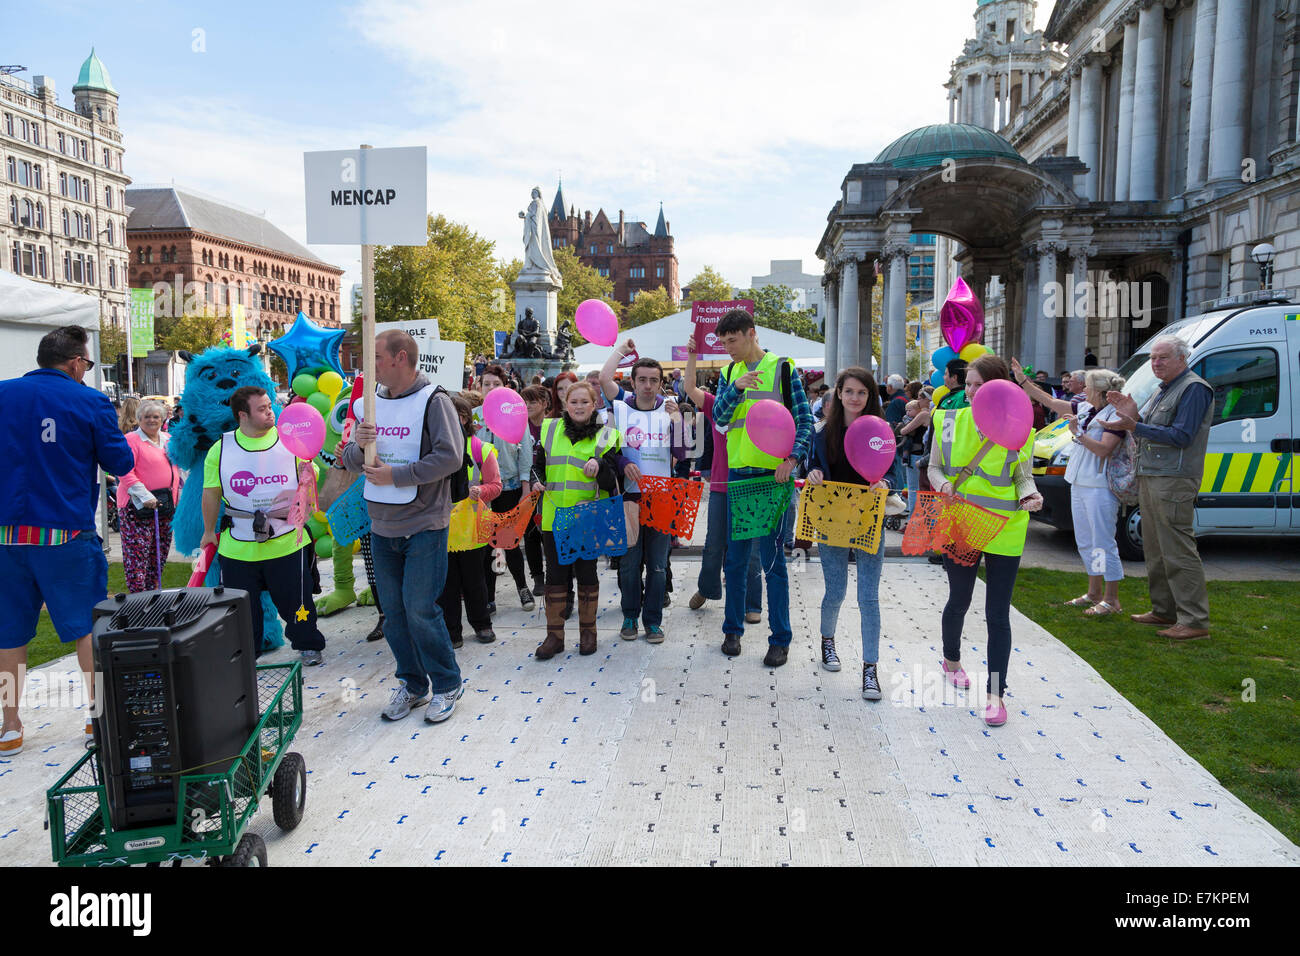 Belfast, Northern Ireland, UK. 20 September 2014. Disability Pride, MENCAP at the City Hall. Credit:  J Orr/Alamy - Stock Image